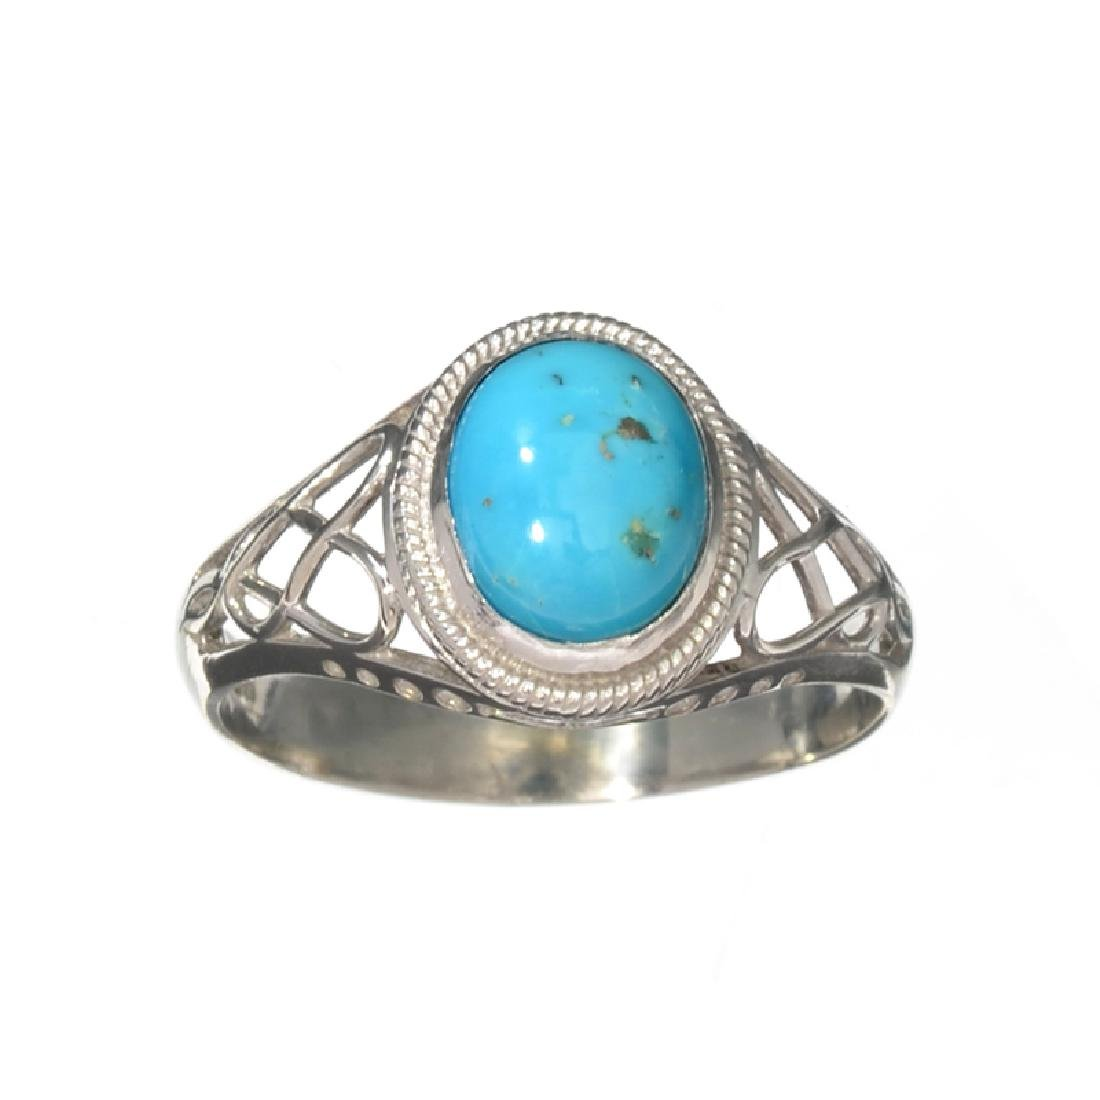 APP: 0.3k Fine Jewelry 1.94CT Cabochon Blue Turquoise